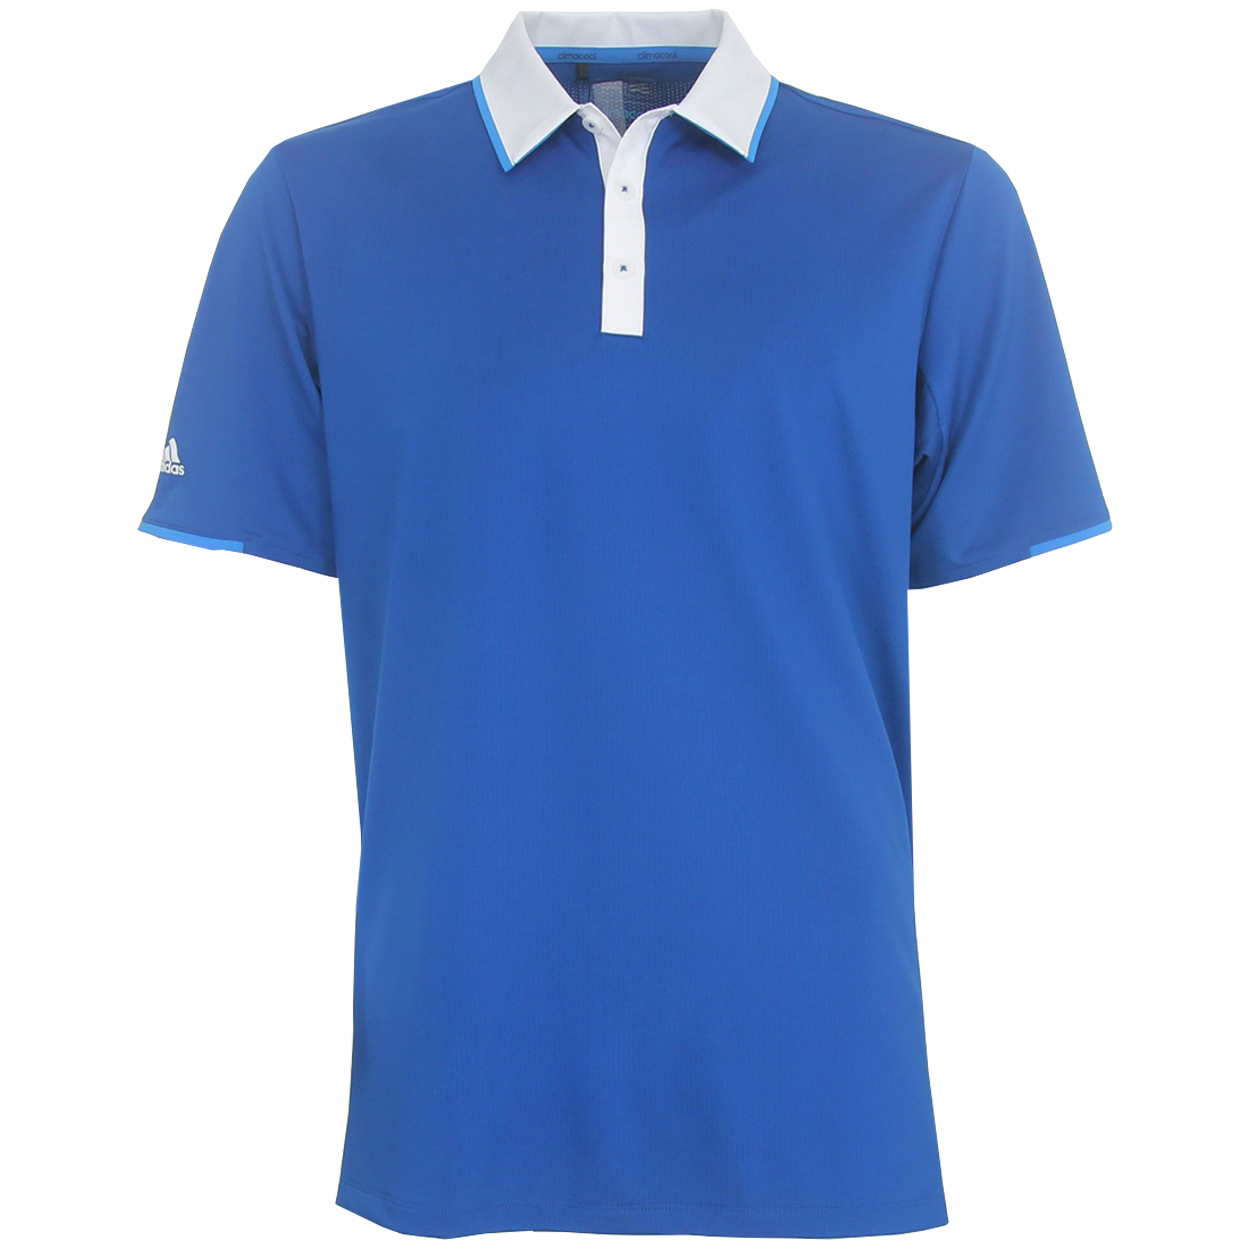 Adidas golf men 39 s climacool tipped polo shirt brand new for All polo shirt brands